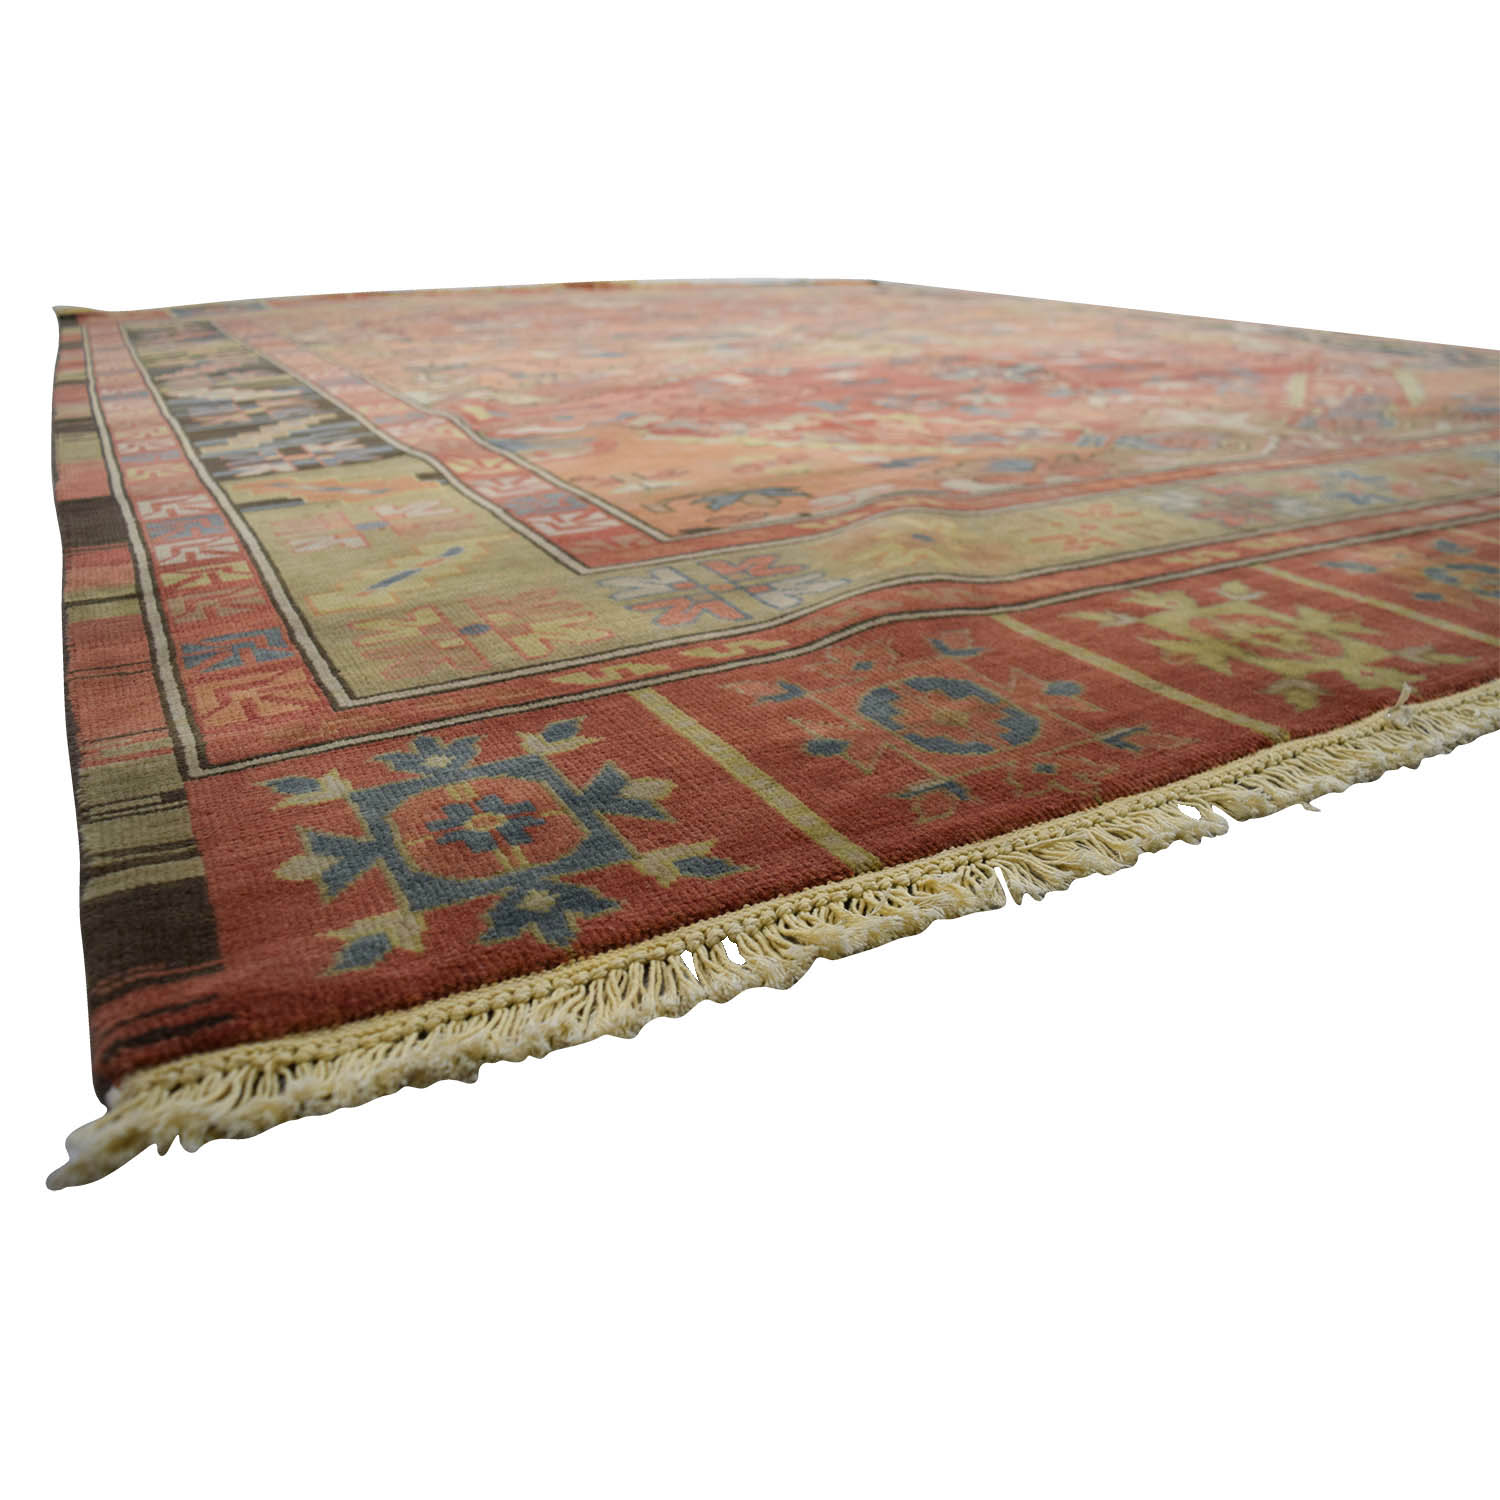 Obeetee Obeetee Kayseri Red Blue and Yellow Wool Rug Blue/Red/Orange/Yellow